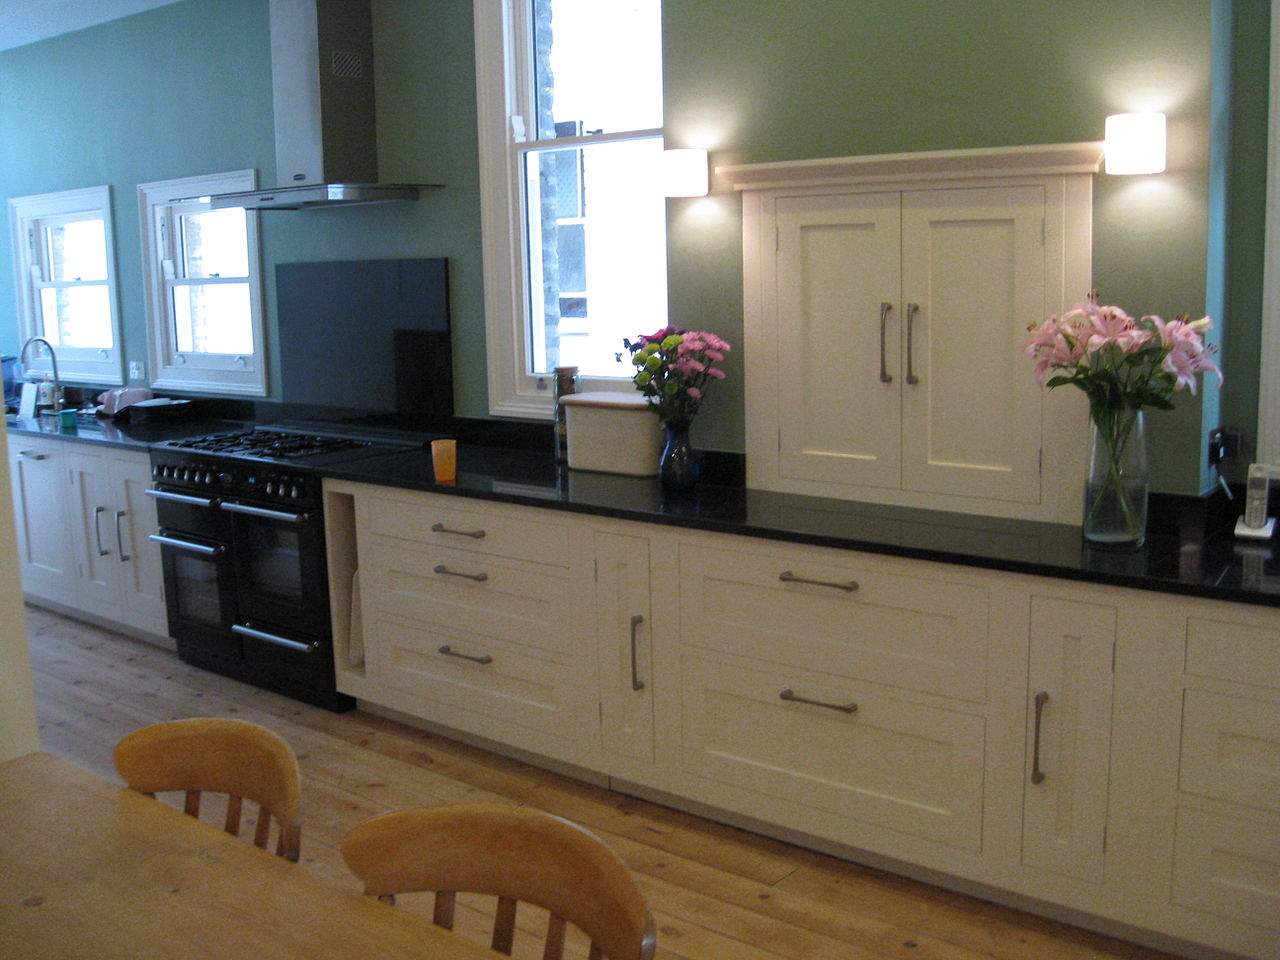 How To Choose A Kitchen Island Openplanned